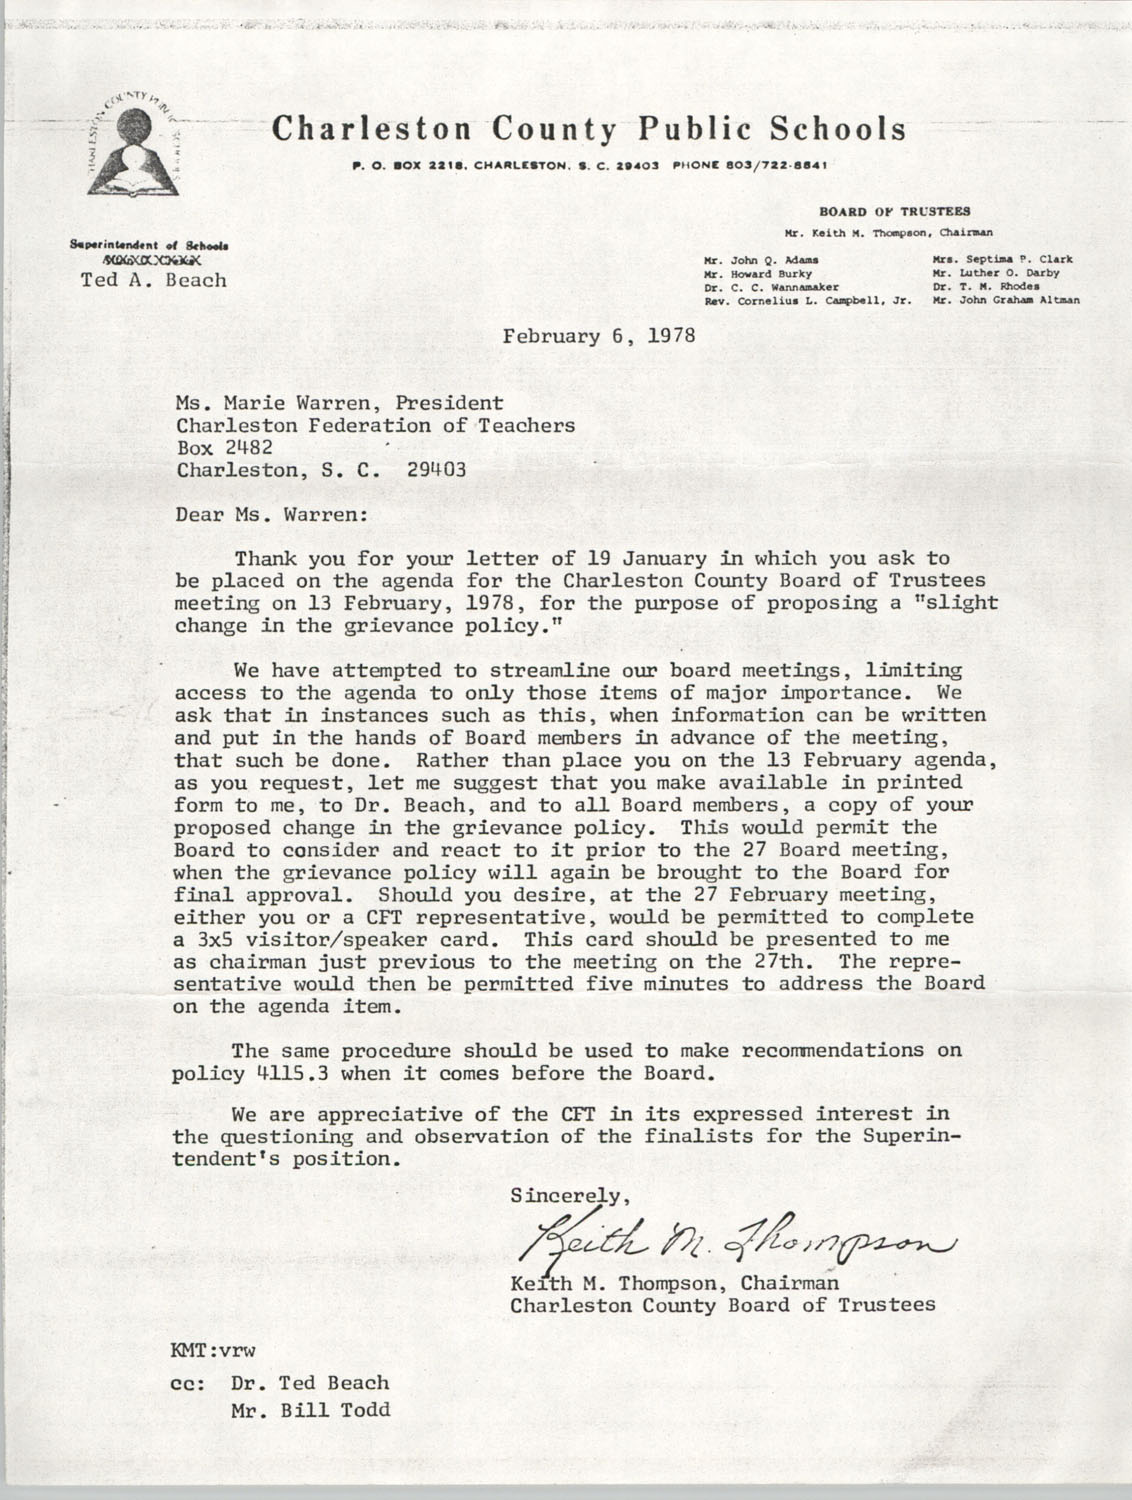 Letter from Keith M. Thompson to Marie Warren, February 6, 1978